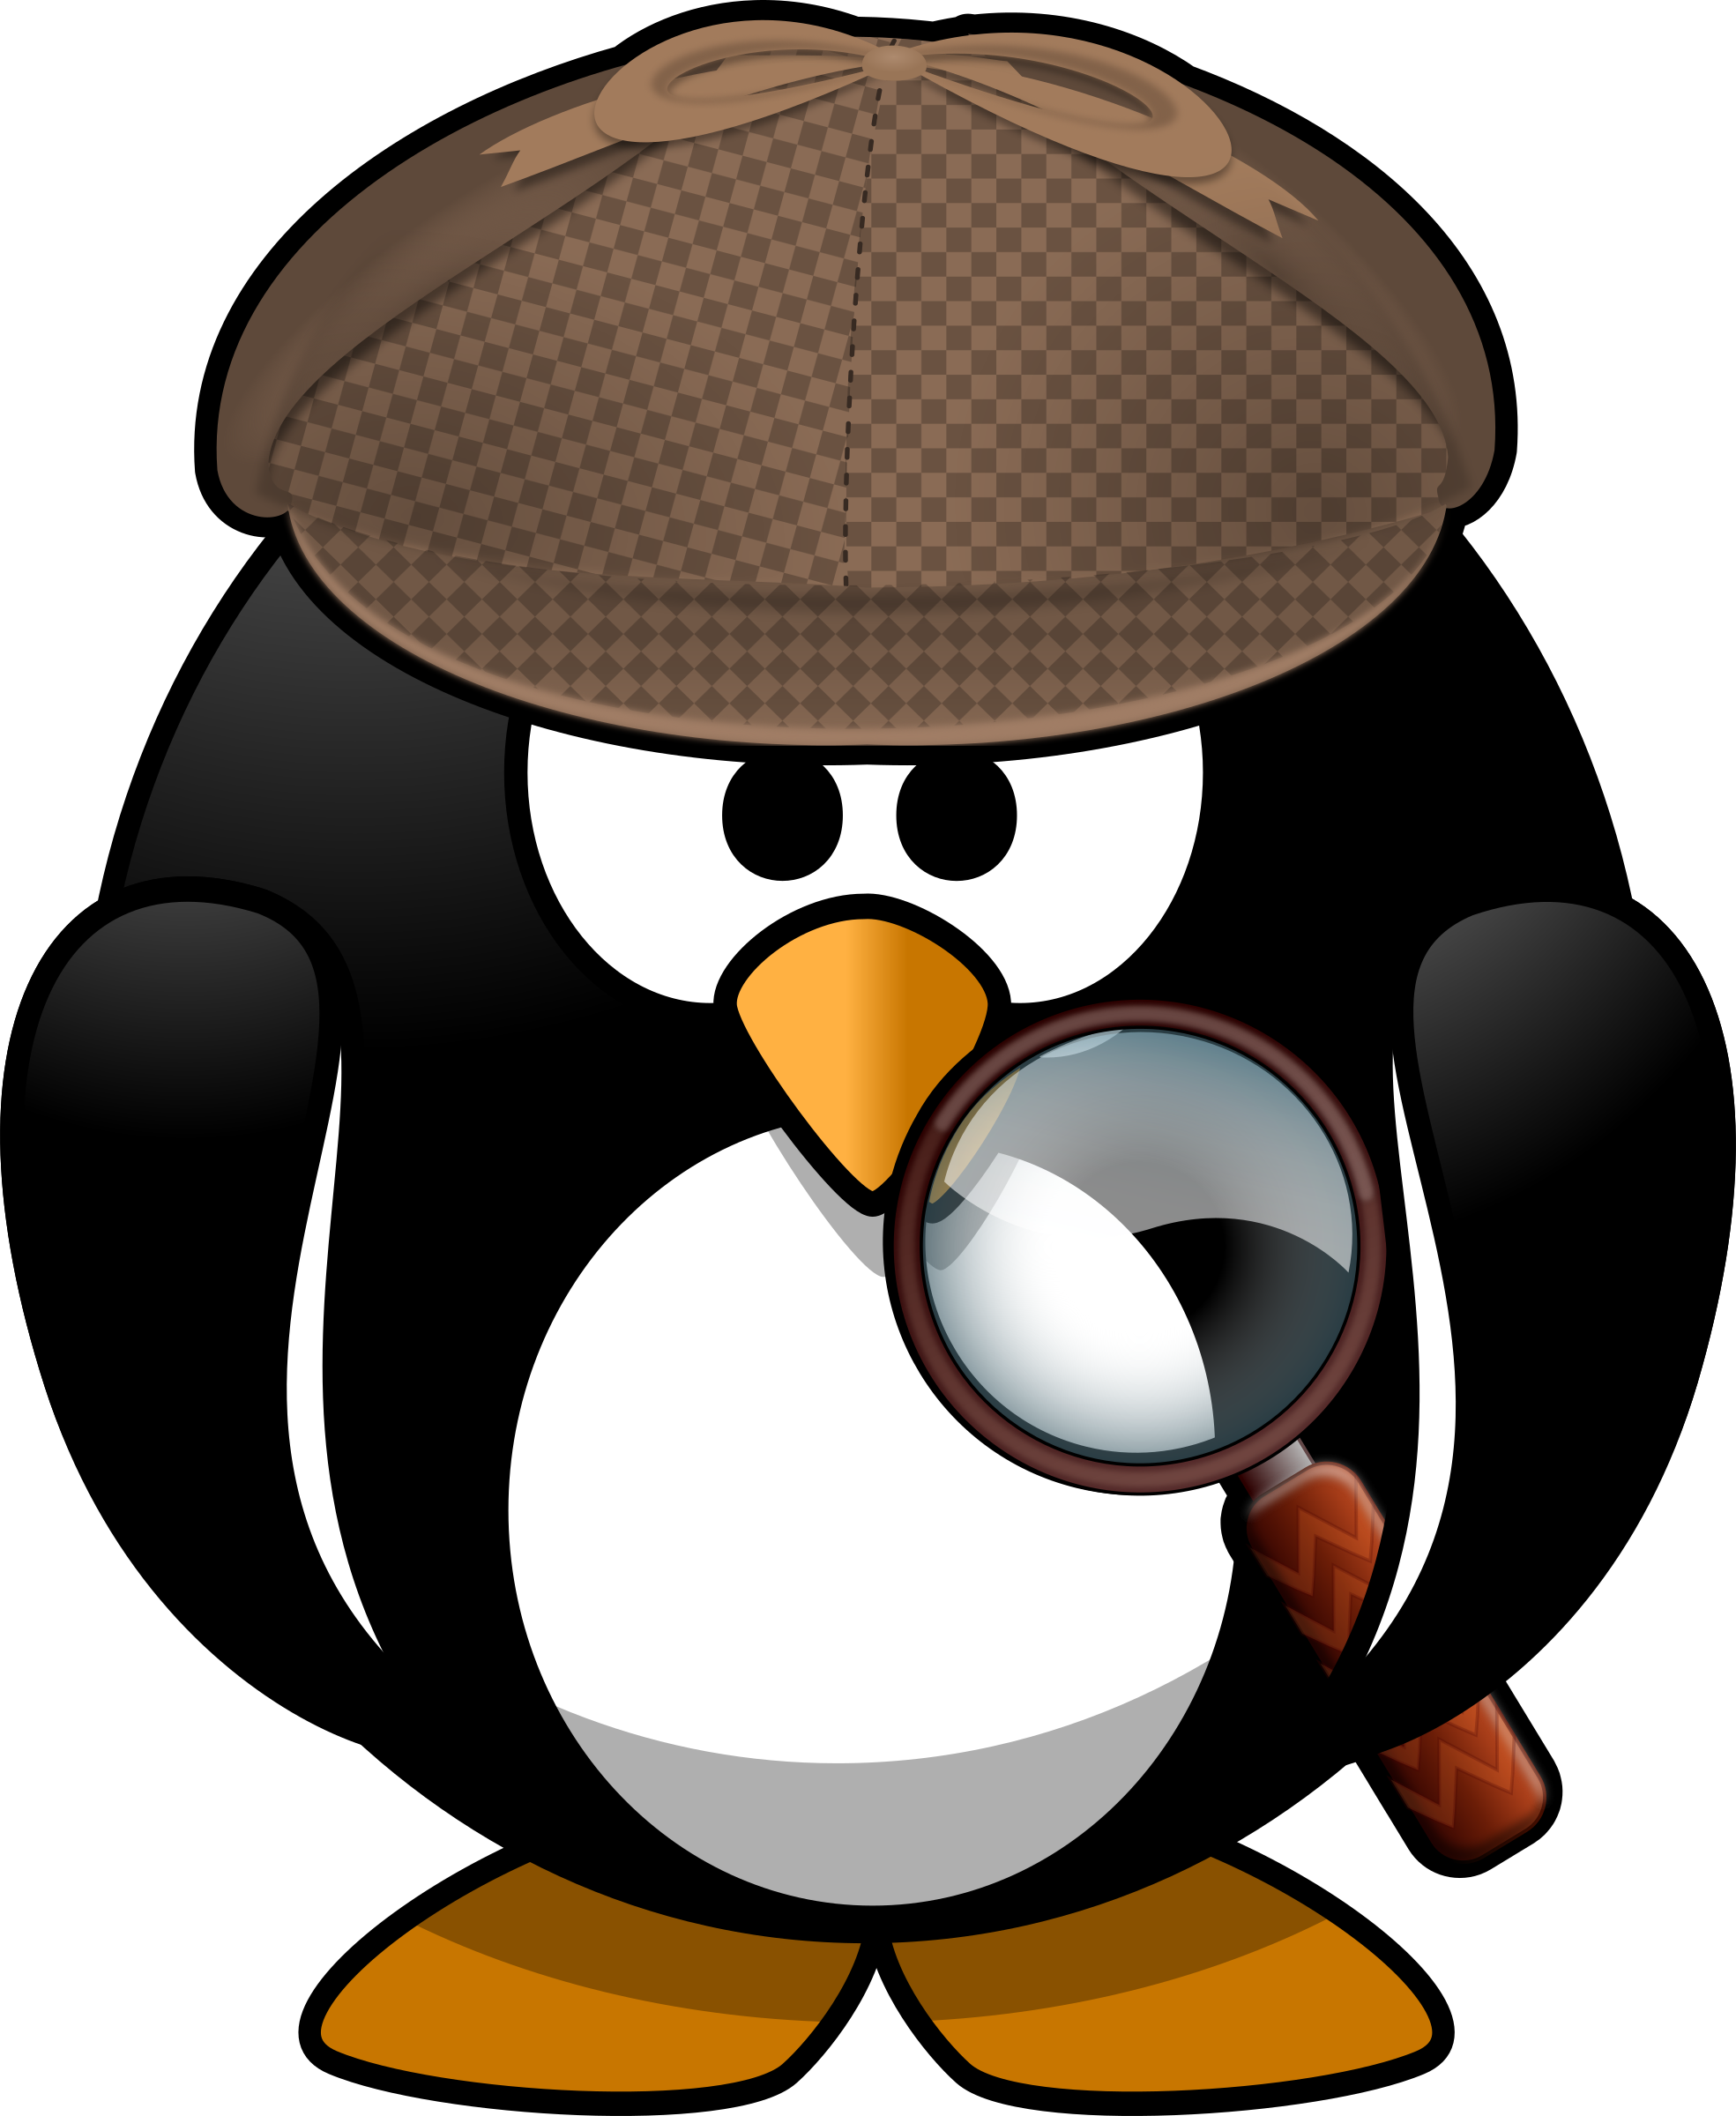 Free Sleuth Cliparts, Download Free Clip Art, Free Clip Art.